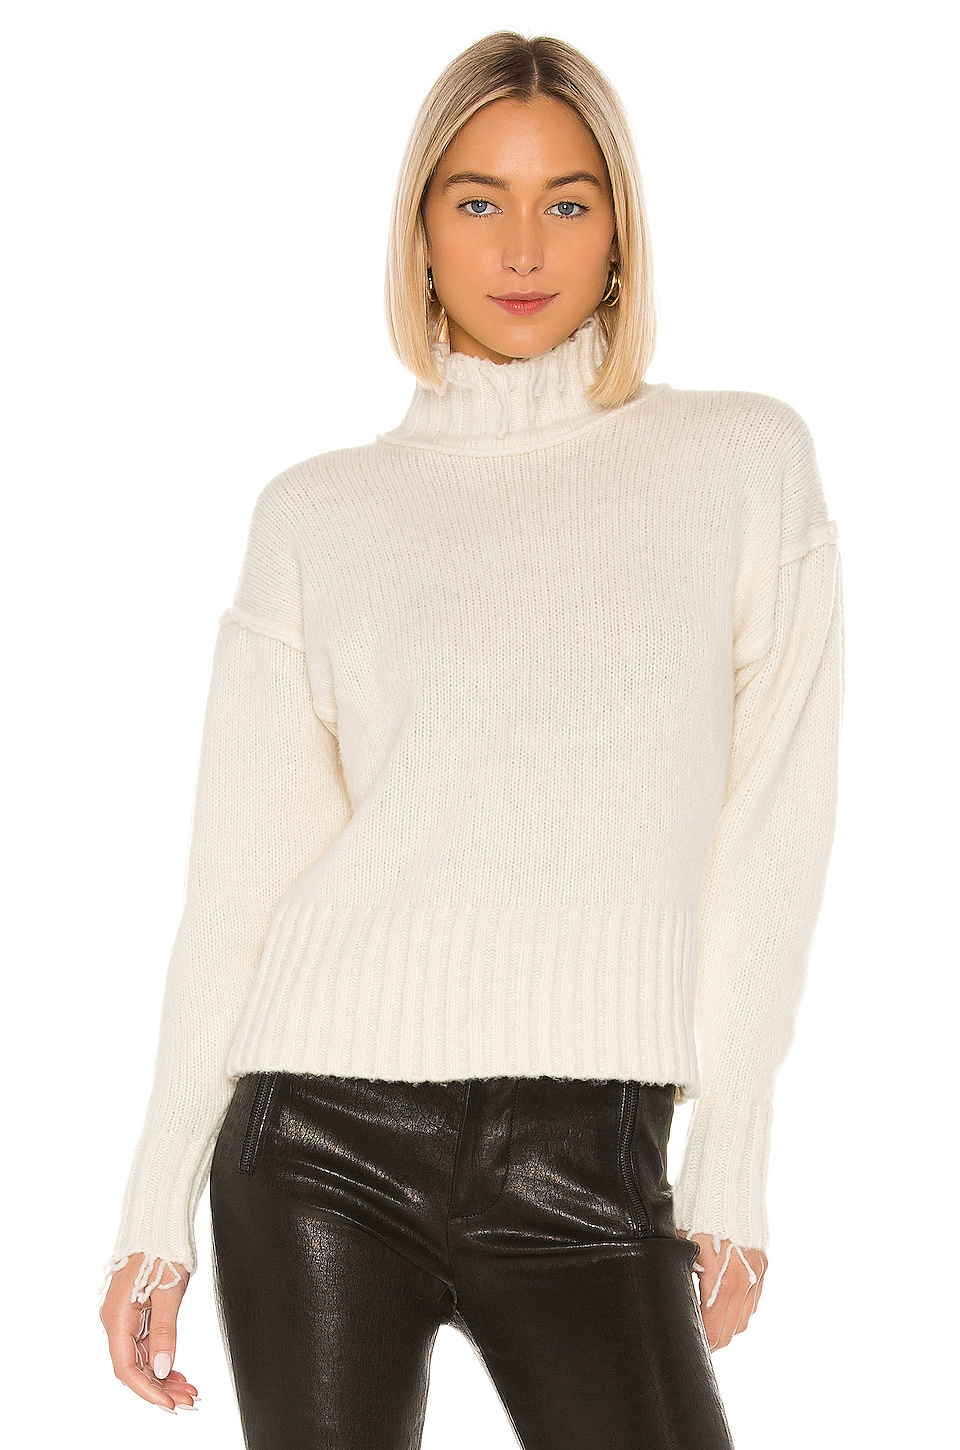 NSF Kori Turtleneck Sweater in Ivory